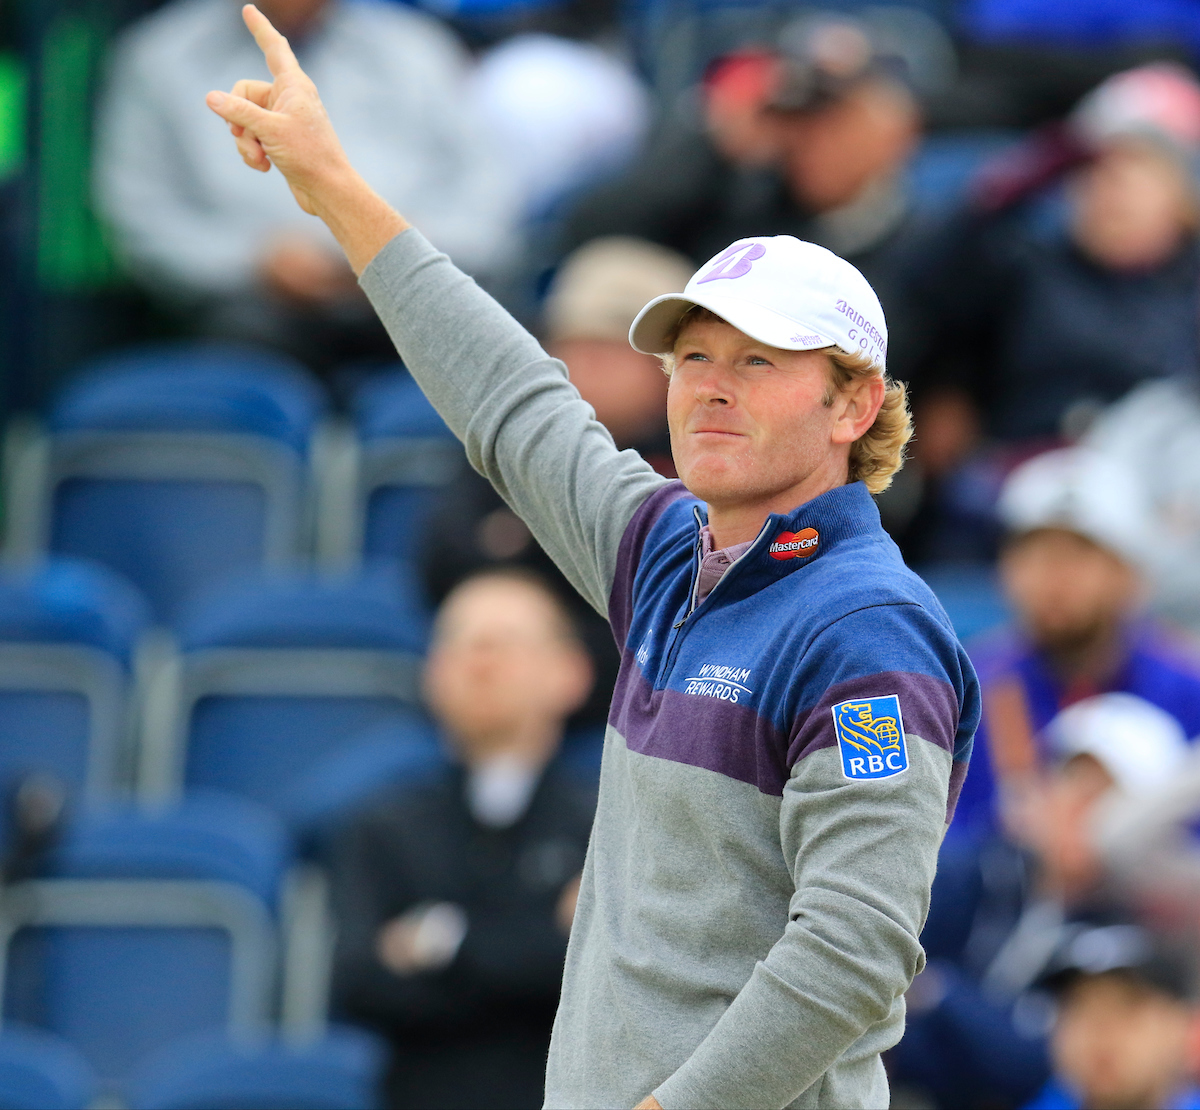 THE GAME: Brandt Snedeker No Jugará El WGC Bridgestone